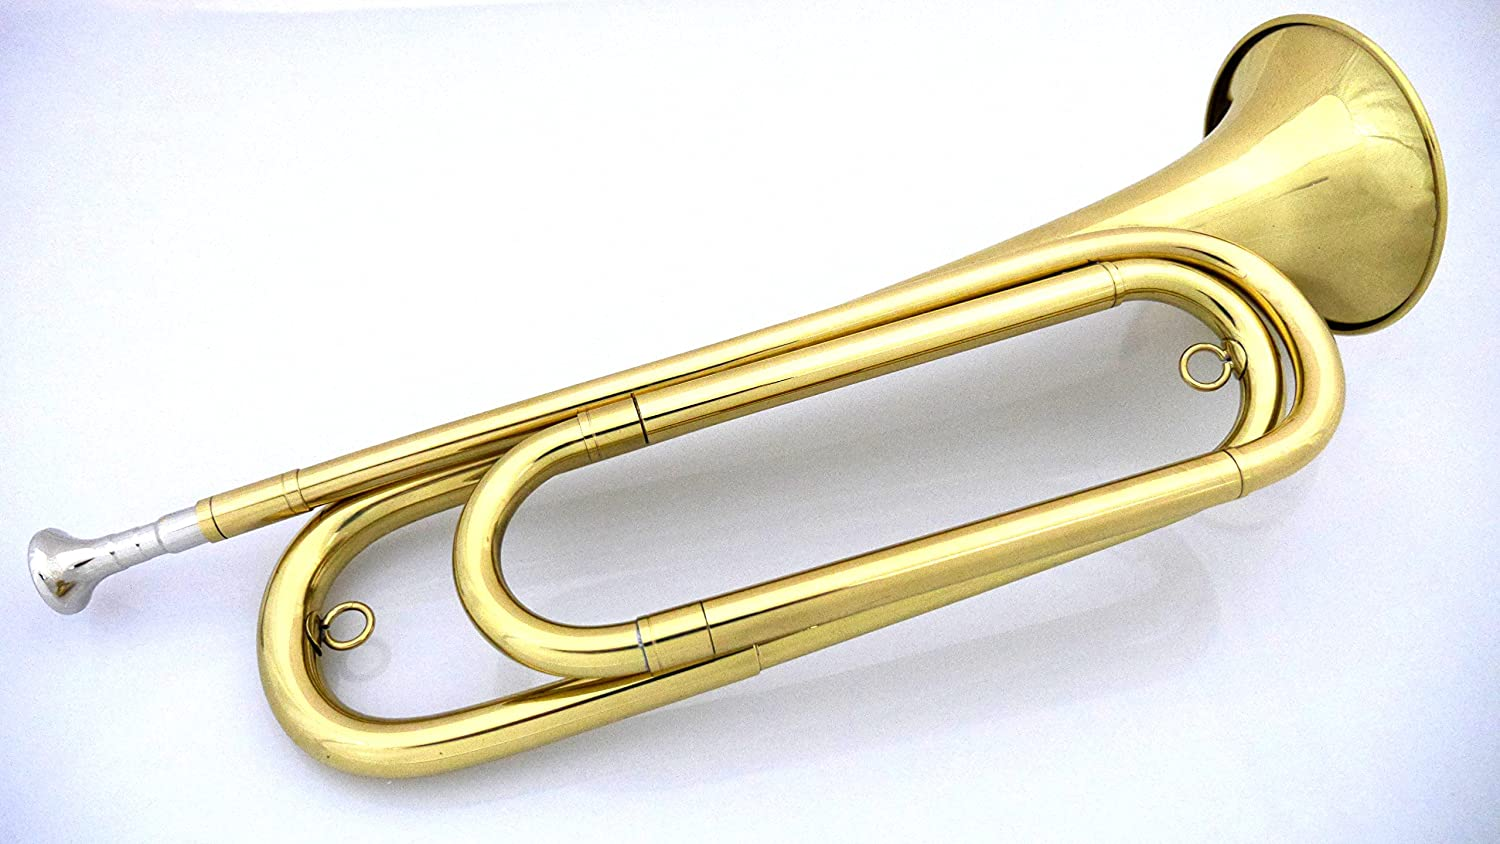 U.S. Regulation Bugle Brass Lacquer w/Mouthpiece and Bag U.S. Regulation Bugle(tm) U.S-6074